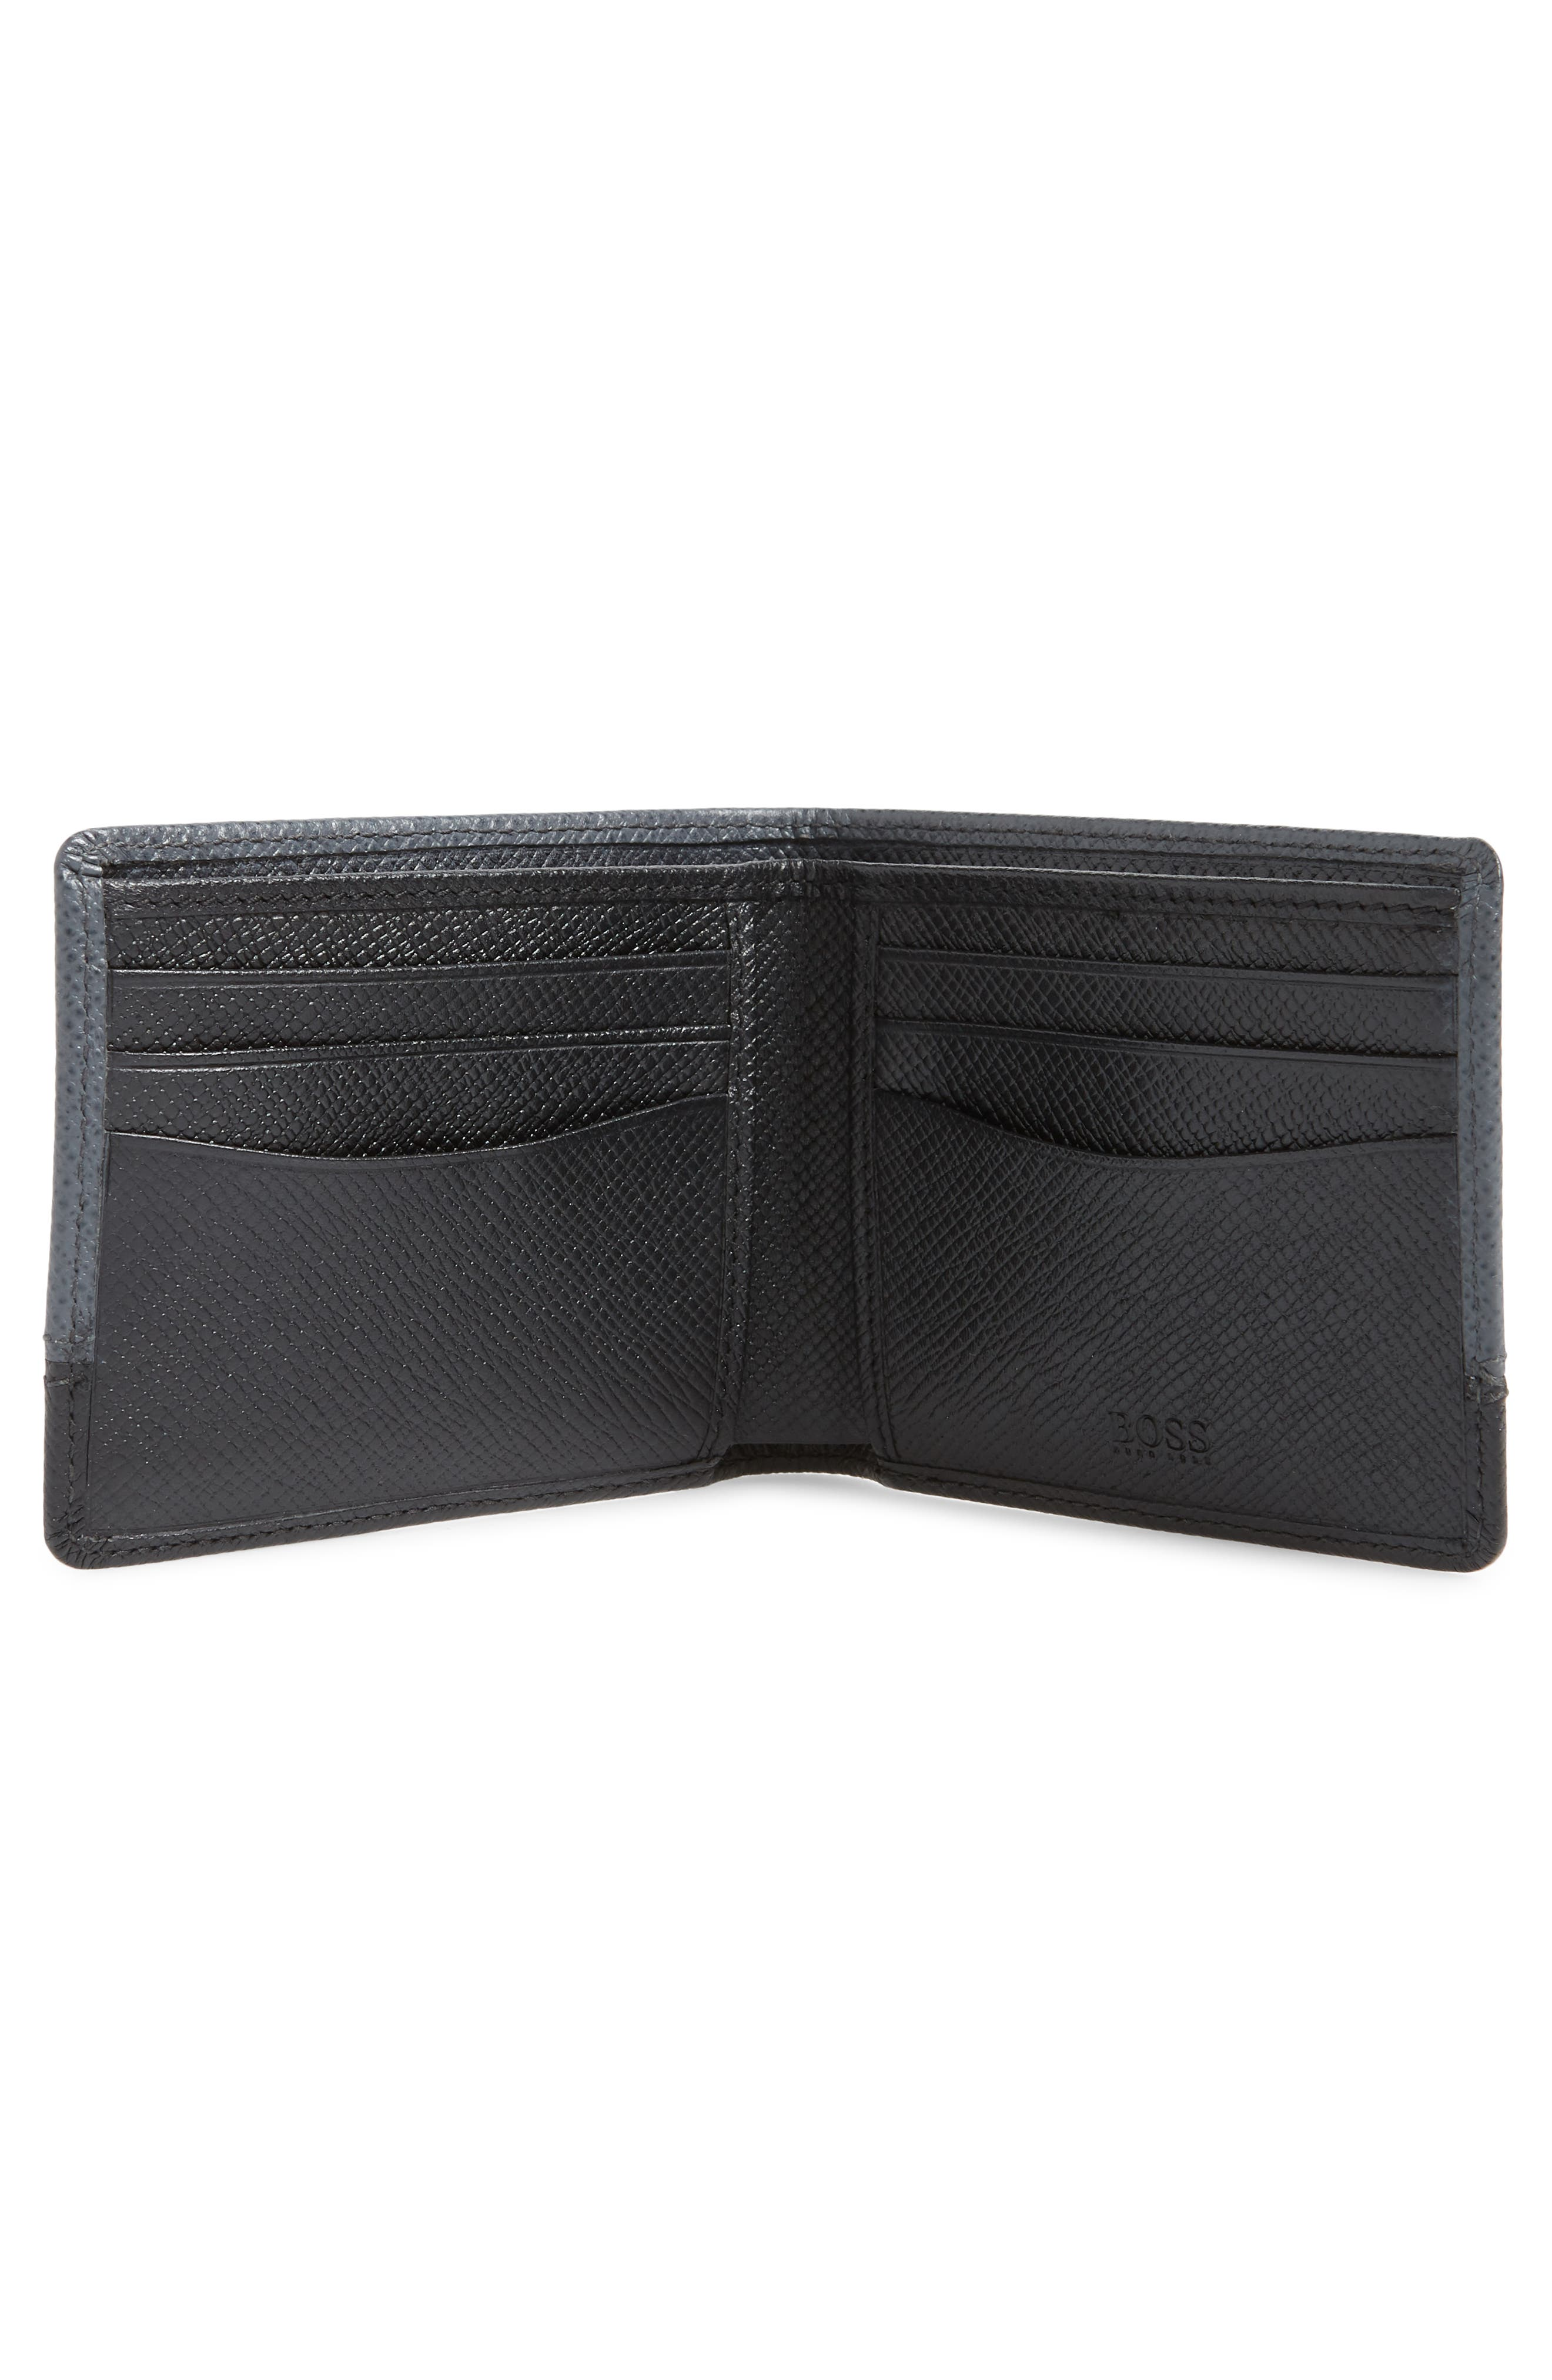 BOSS, Embossed Leather Wallet, Alternate thumbnail 2, color, DARK GREY